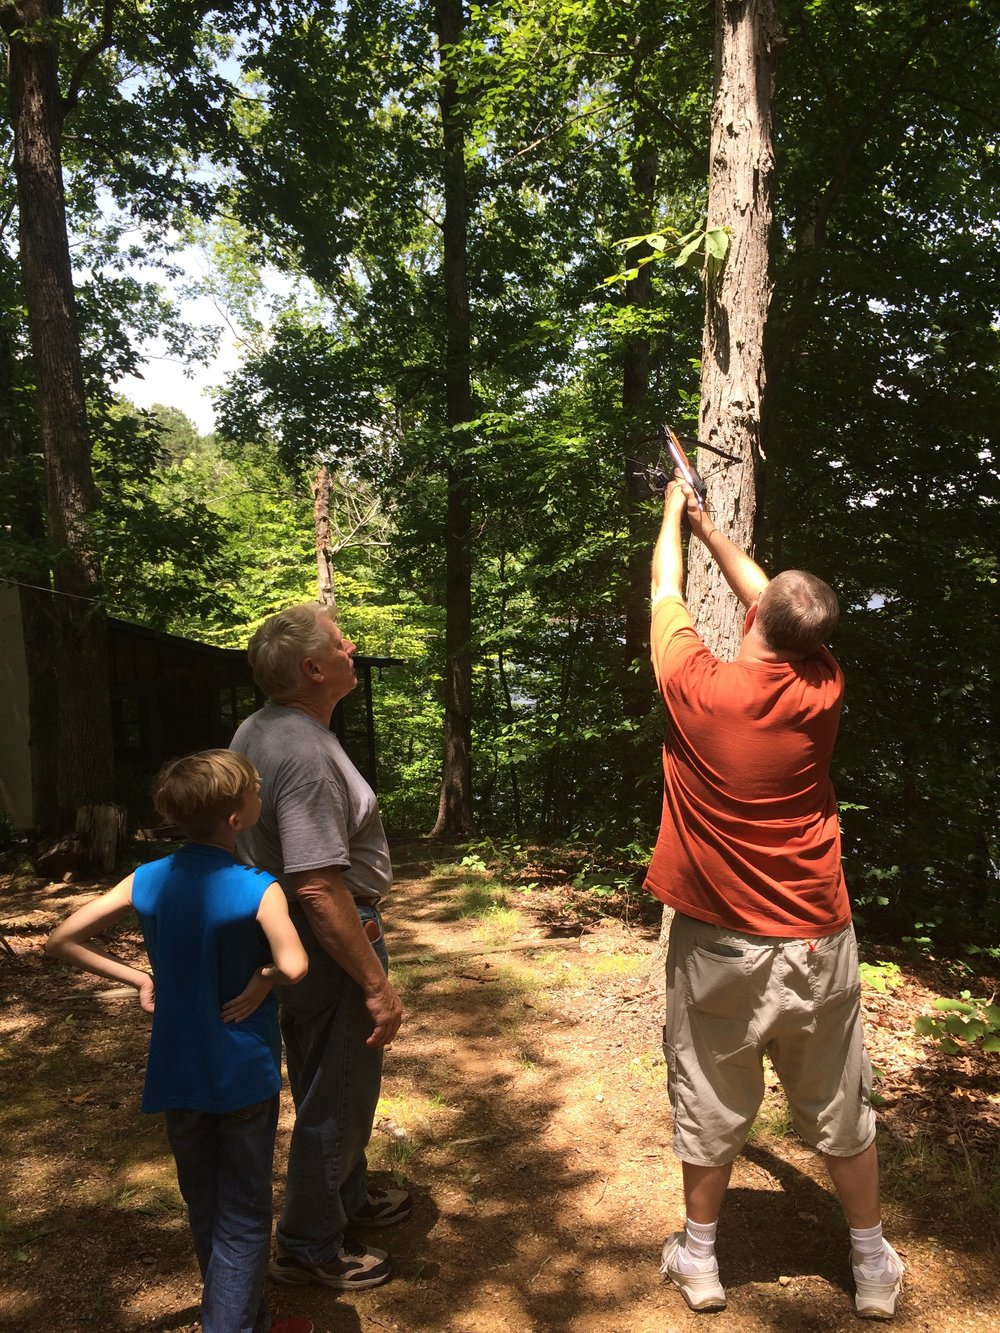 - Ed (WA0YBB), Bill (KG4SAQ) and Ed's grandson Micah continue to launch bolts into the trees to hoist the 40M wire antenna.